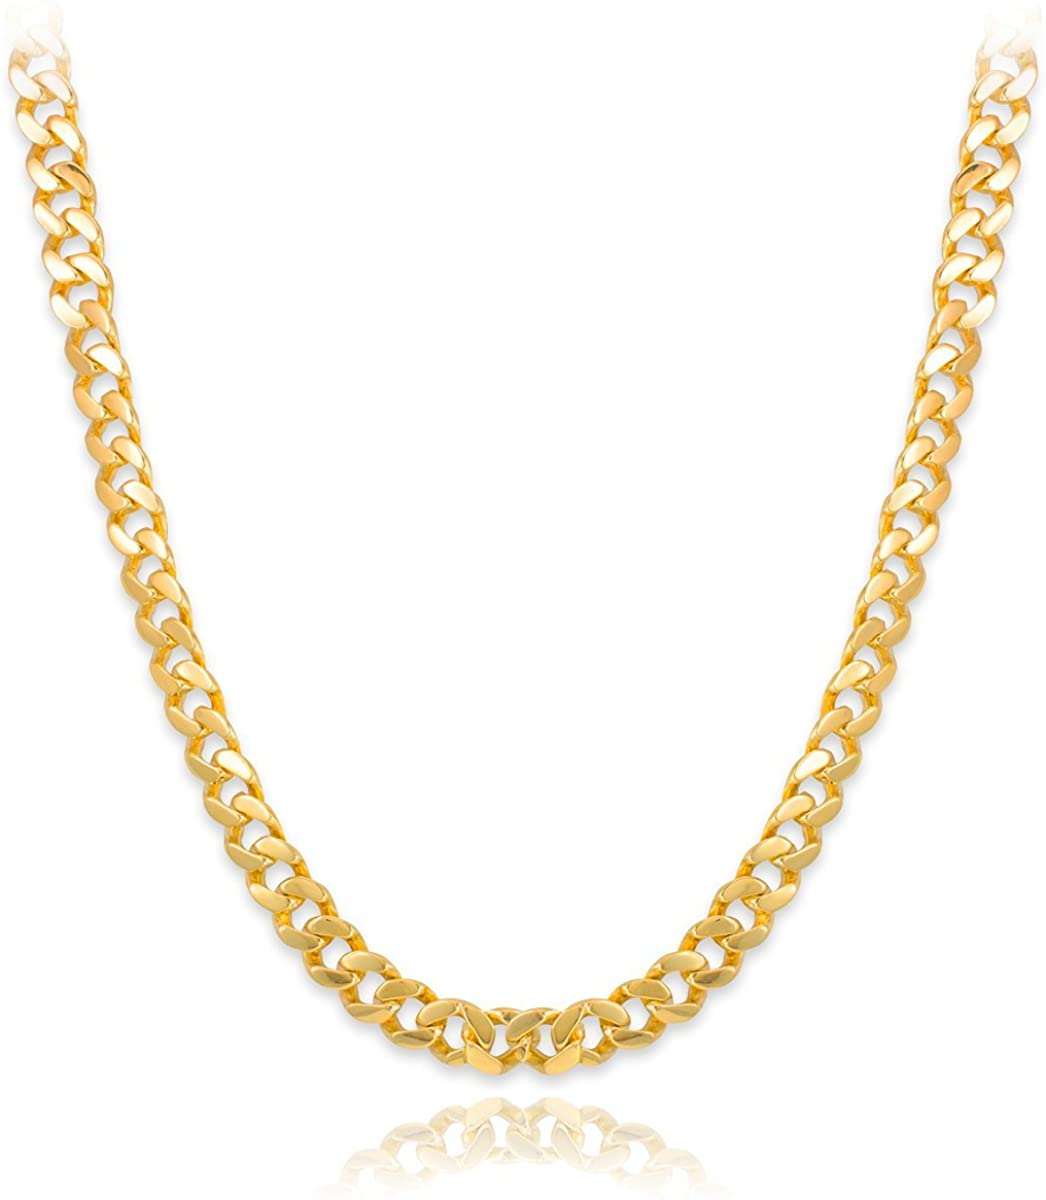 Men's Solid 10k Yellow Gold 10mm Cuban Link Chain Necklace